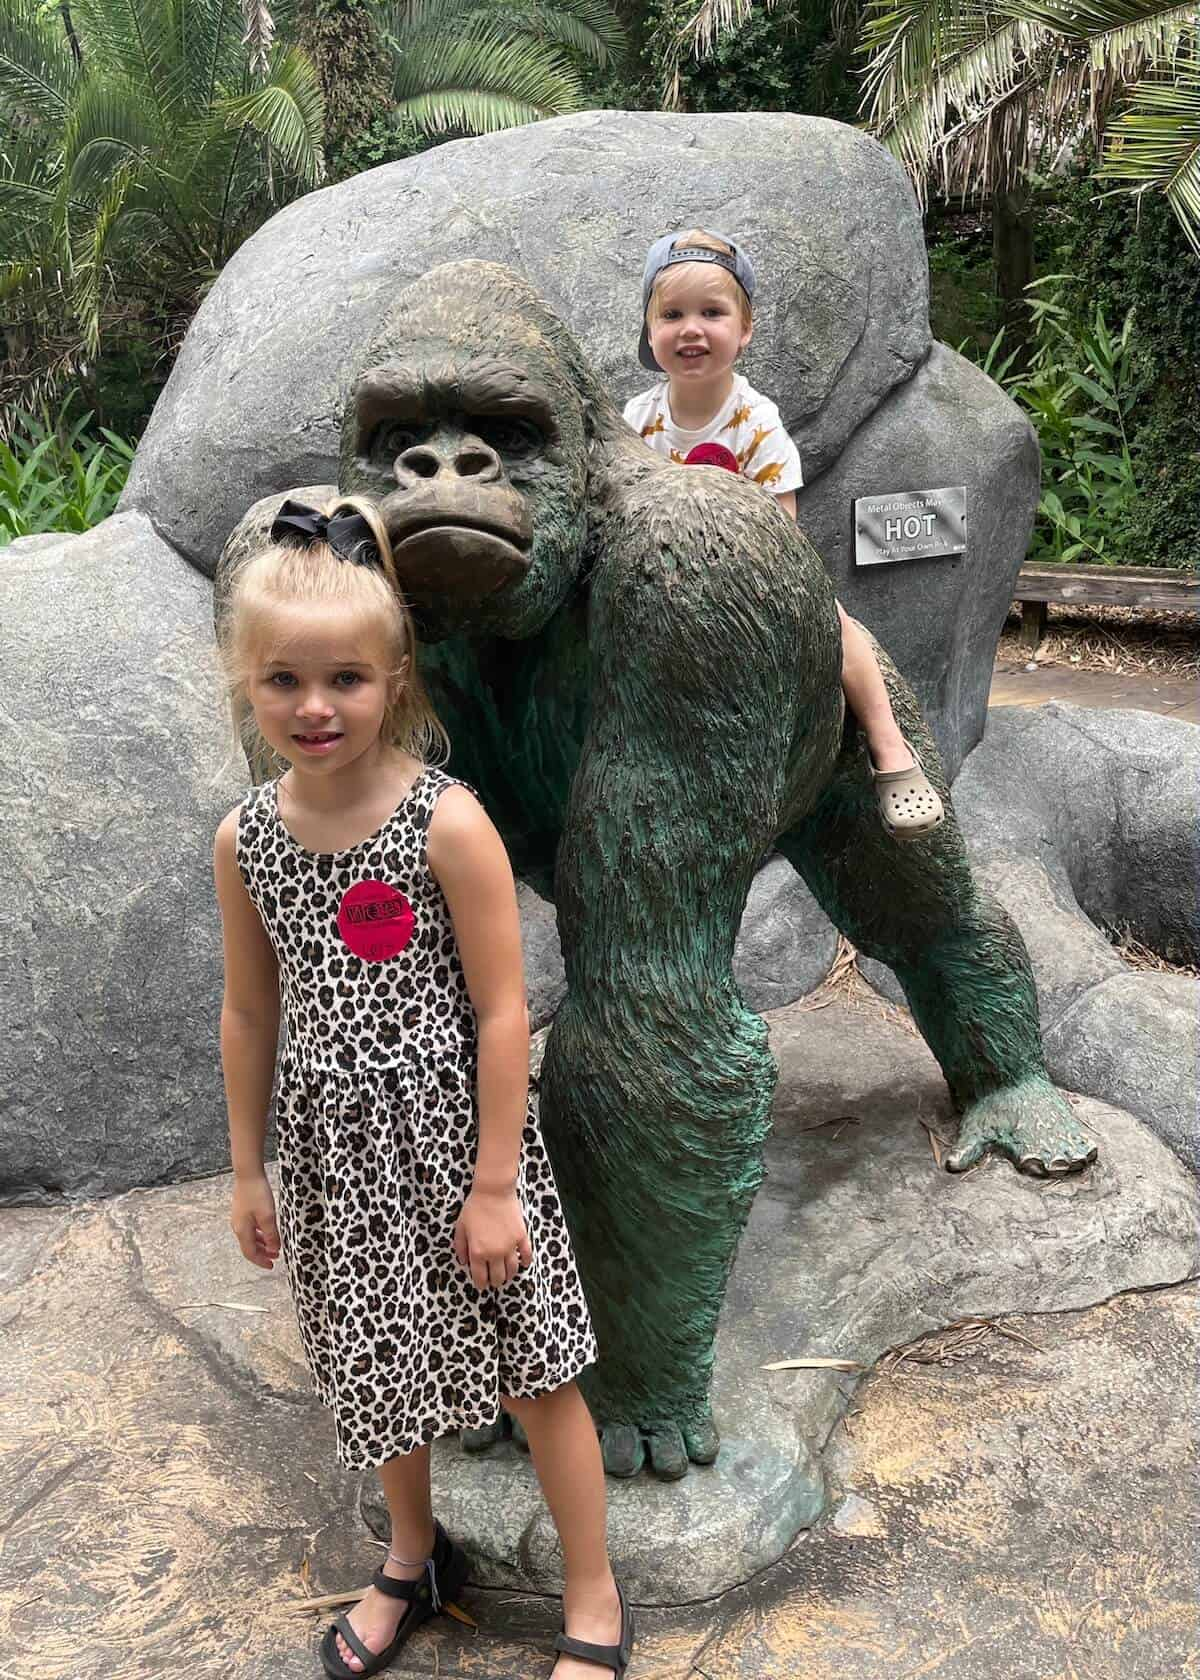 Tips for Visiting Jacksonville Zoo: Jacksonville Zoo Planning Guide